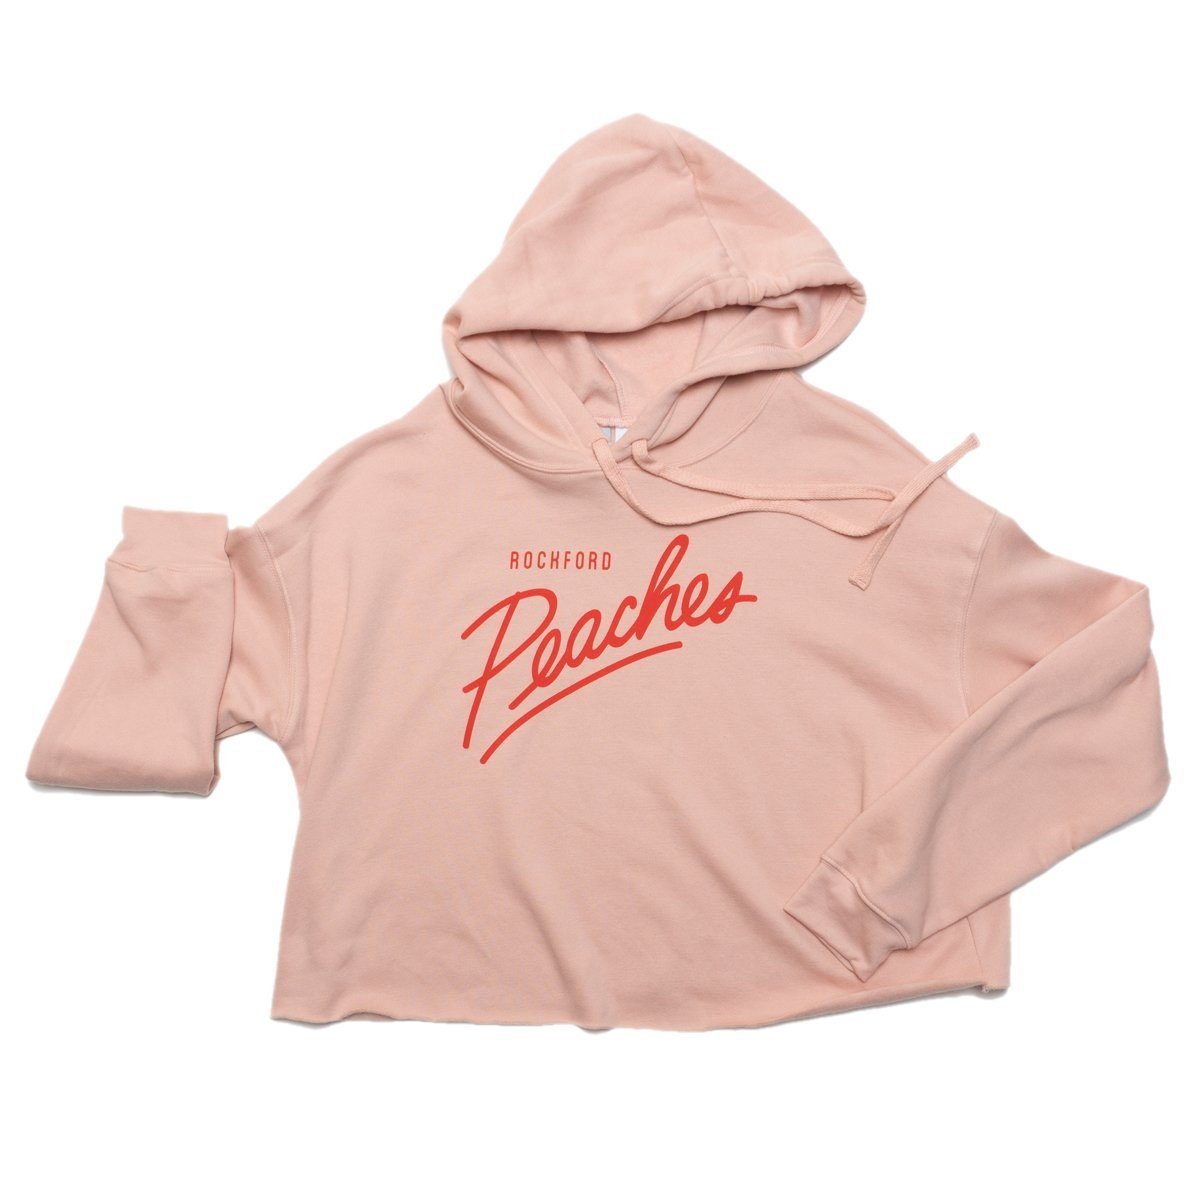 Peach Script Cropped Hoodie Crop Sweatshirt Bella + Canvas